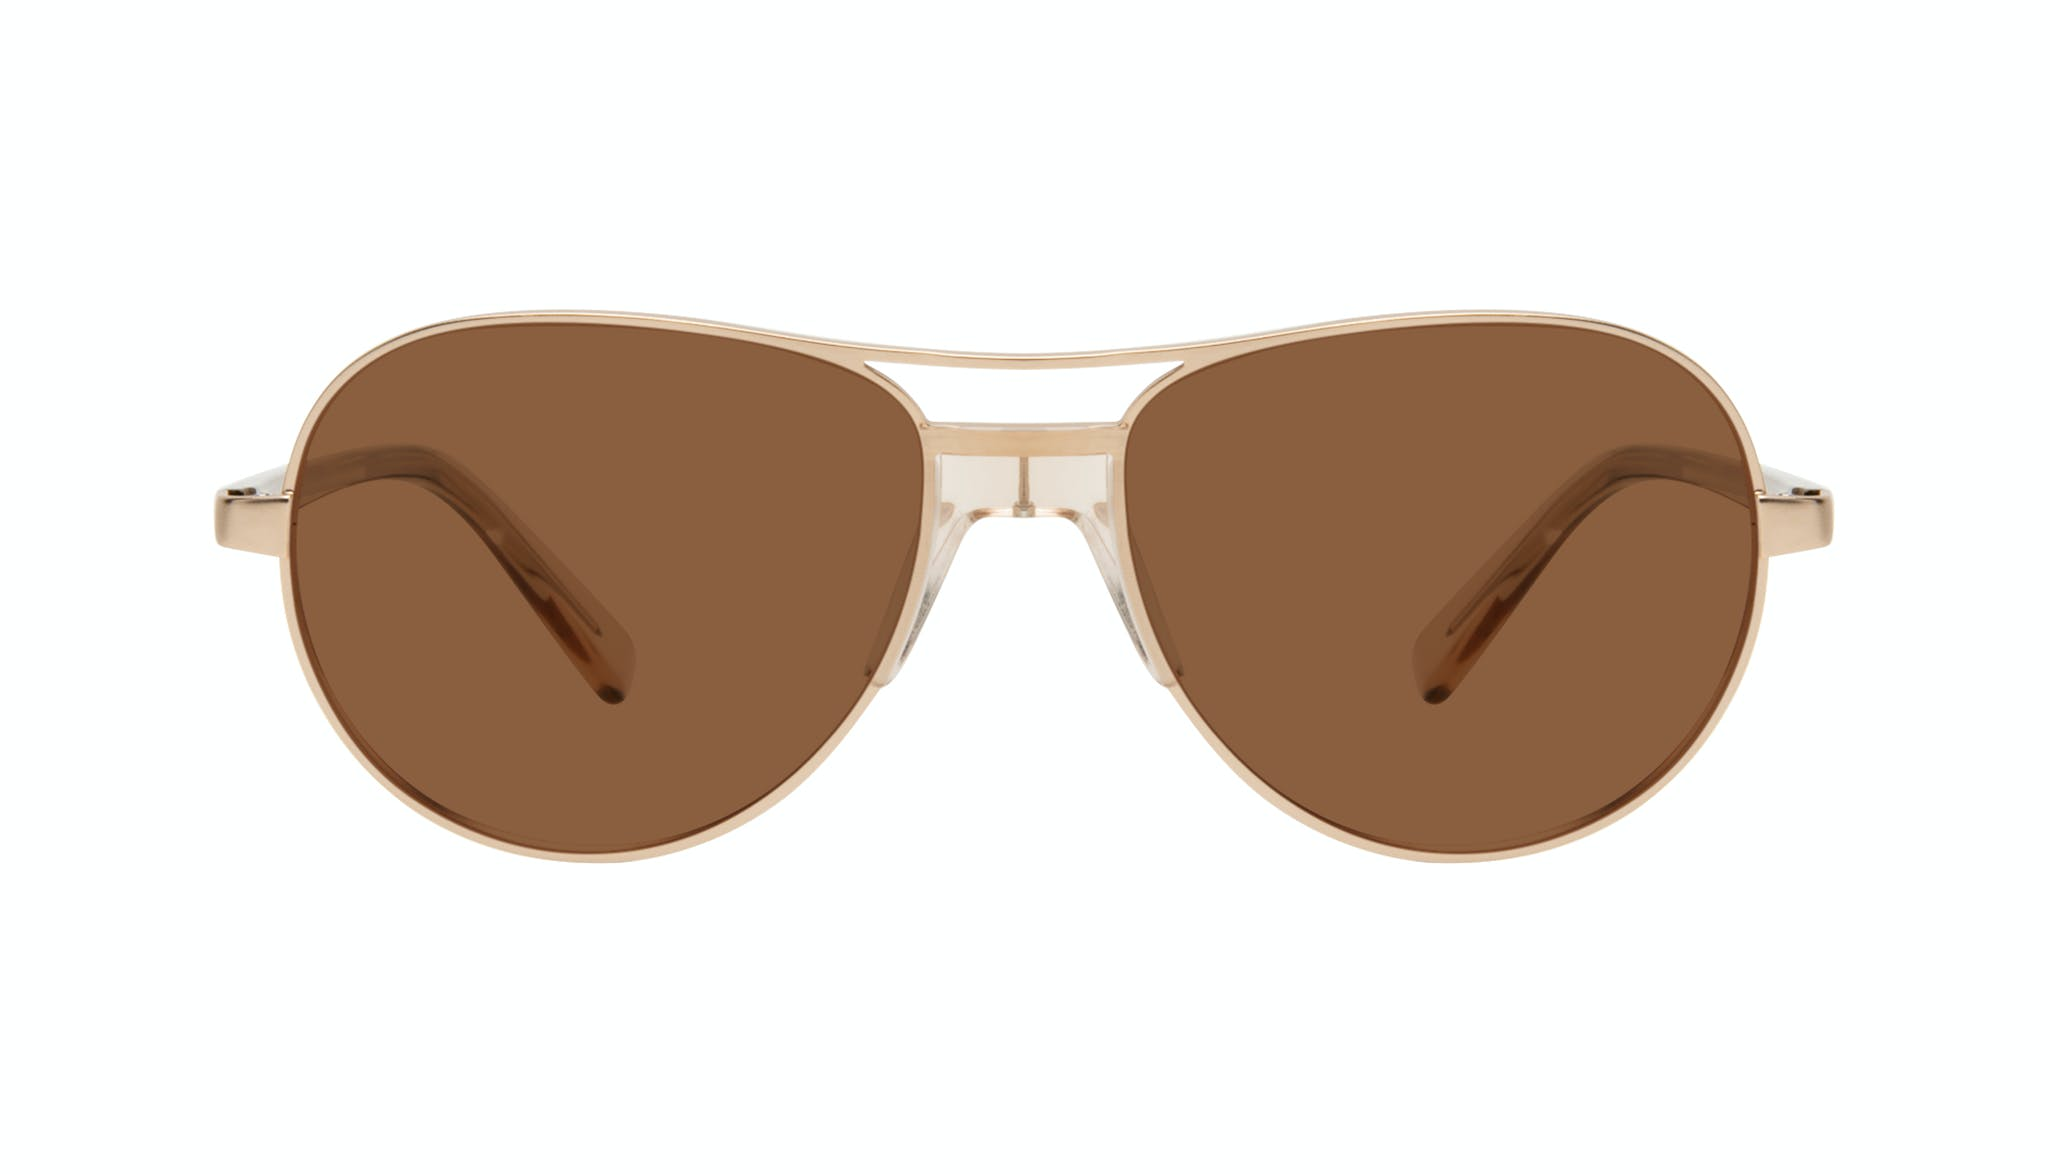 Affordable Fashion Glasses Aviator Sunglasses Women Ultimate Gold Front